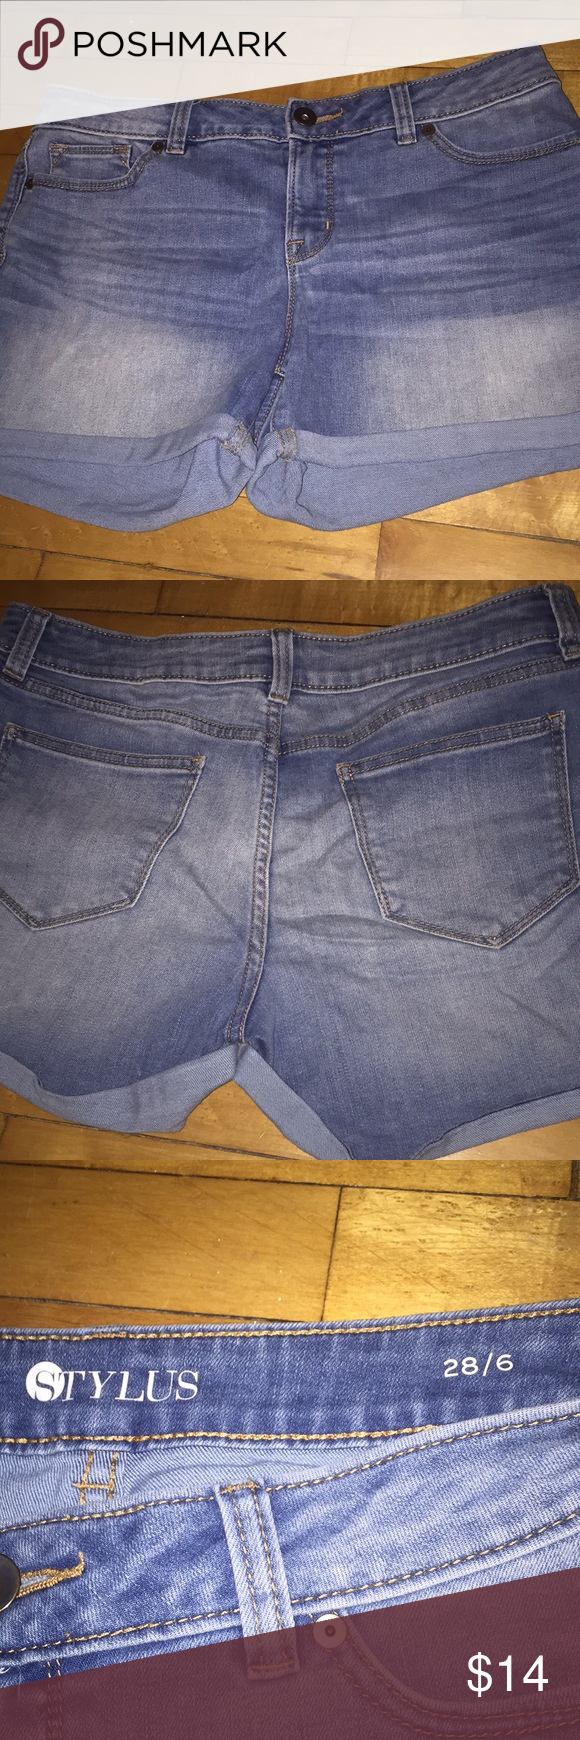 74ddbe9e71 Comfy Jean Shorts Super comfortable Jean Shorts that hit a little bit above  mid thigh. 3 inch inseam when cuffed. STYLUS Shorts Jean Shorts